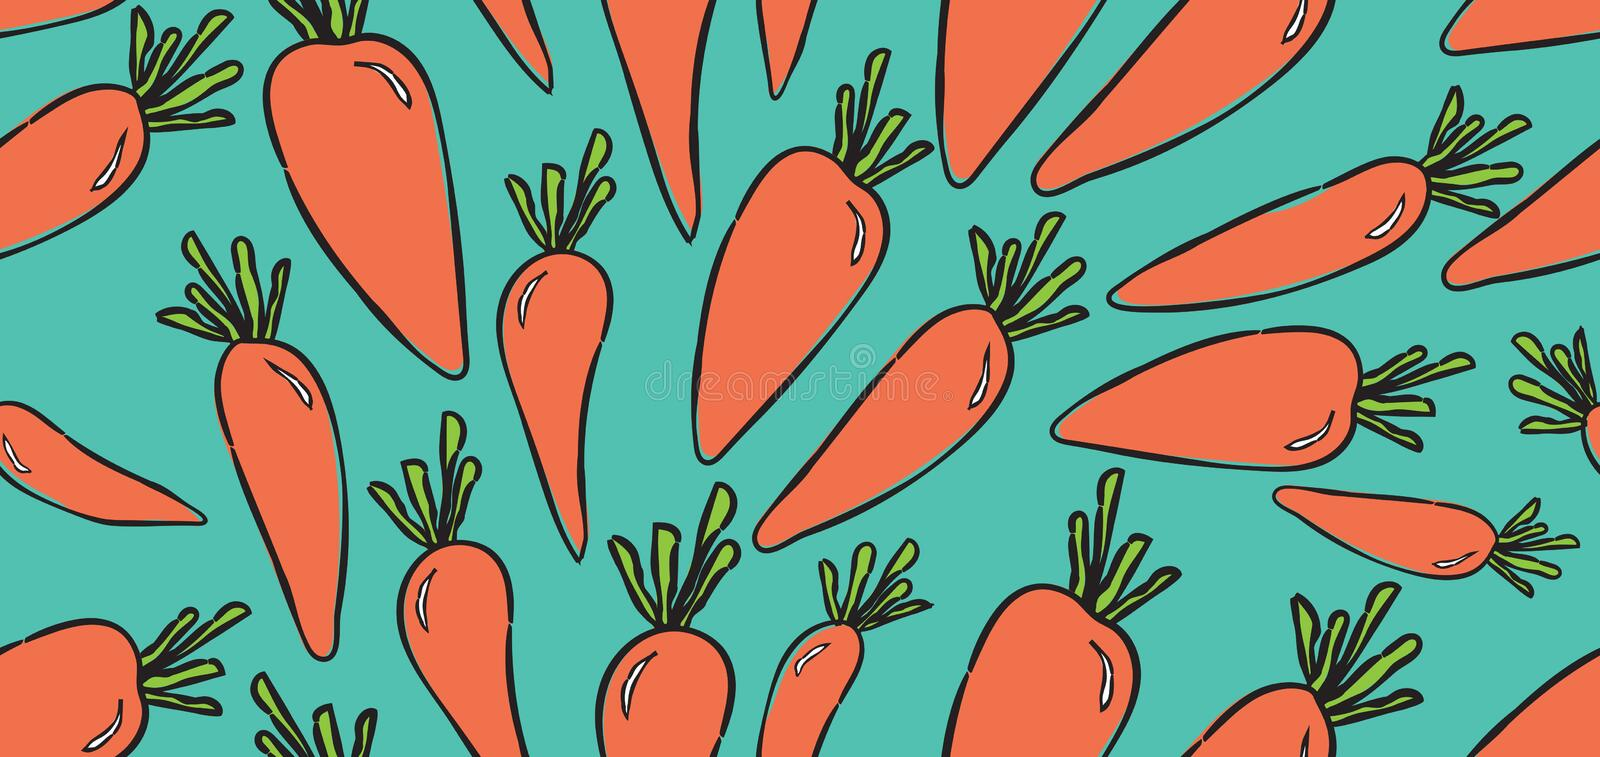 Vegetables seamless pattern, Vegetables banner template vector, web banner, web page, Carrots royalty free stock image